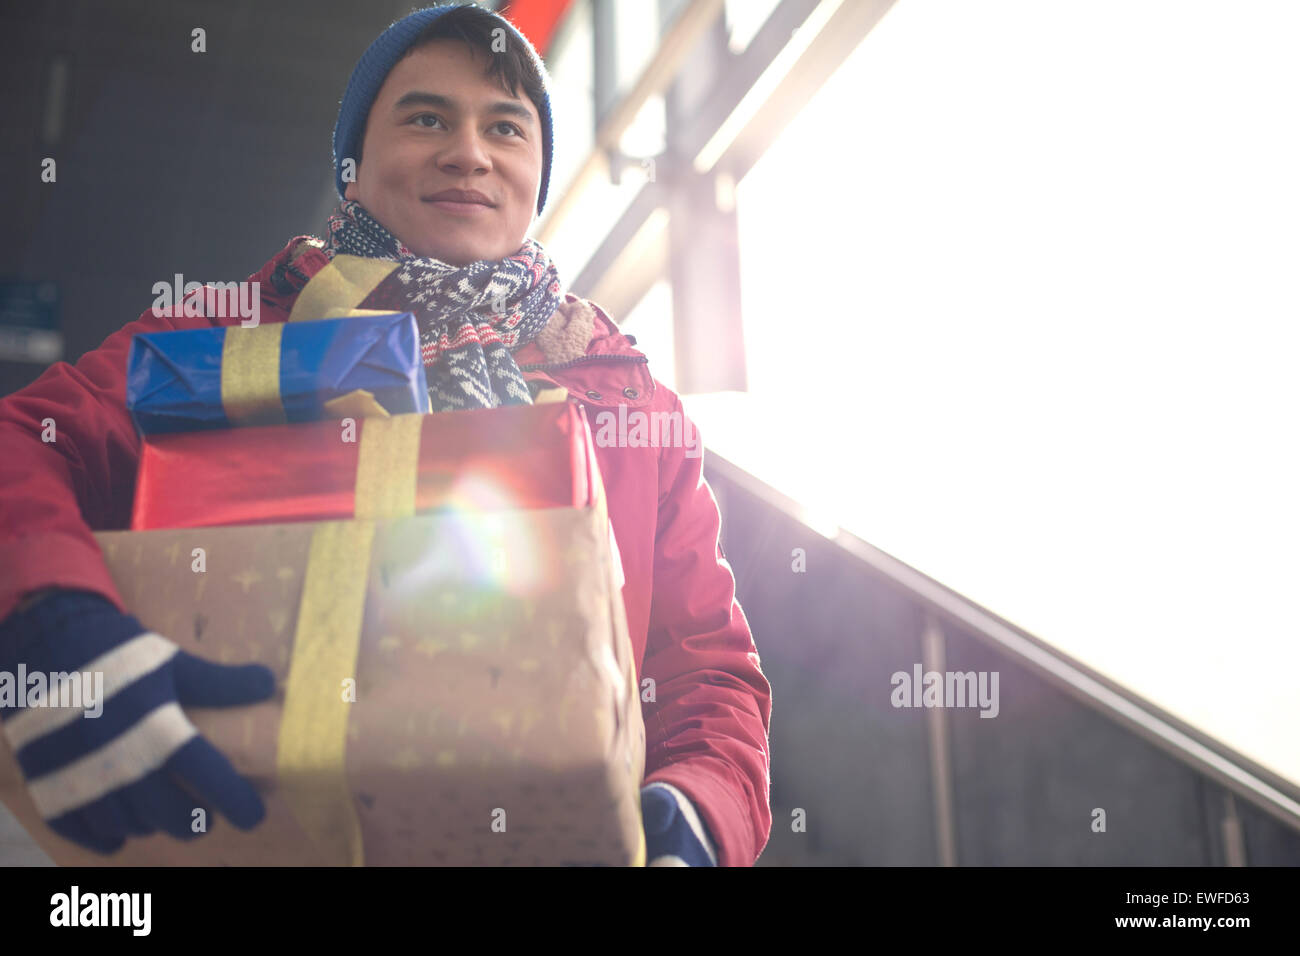 Low angle view of smiling man holding gifts by window Photo Stock